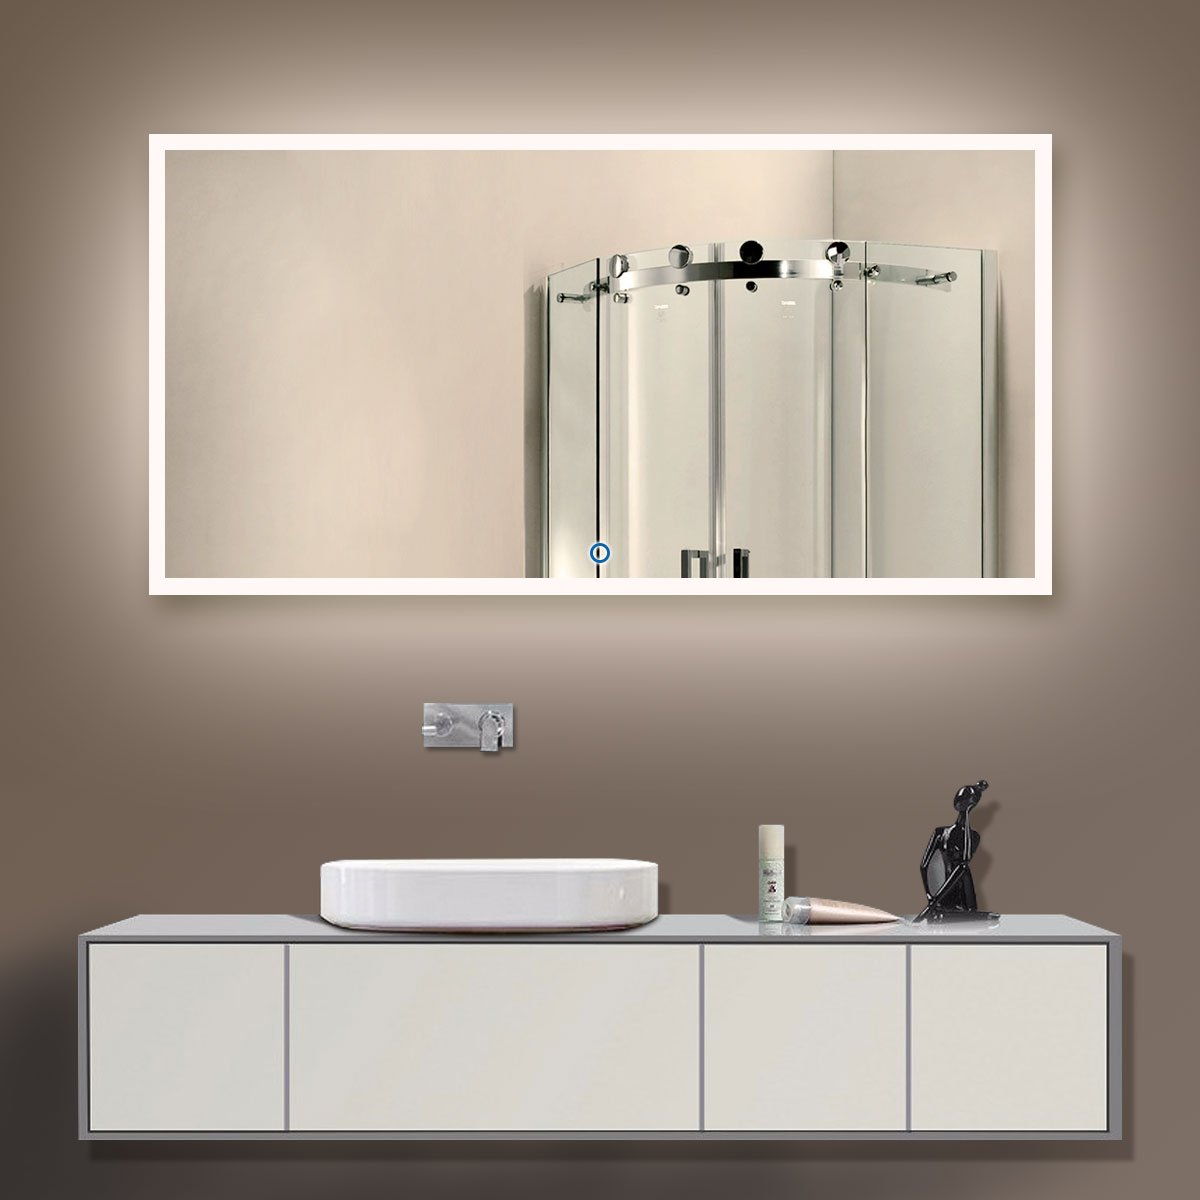 Fresh Frameless Medicine Cabinet Wall Mount